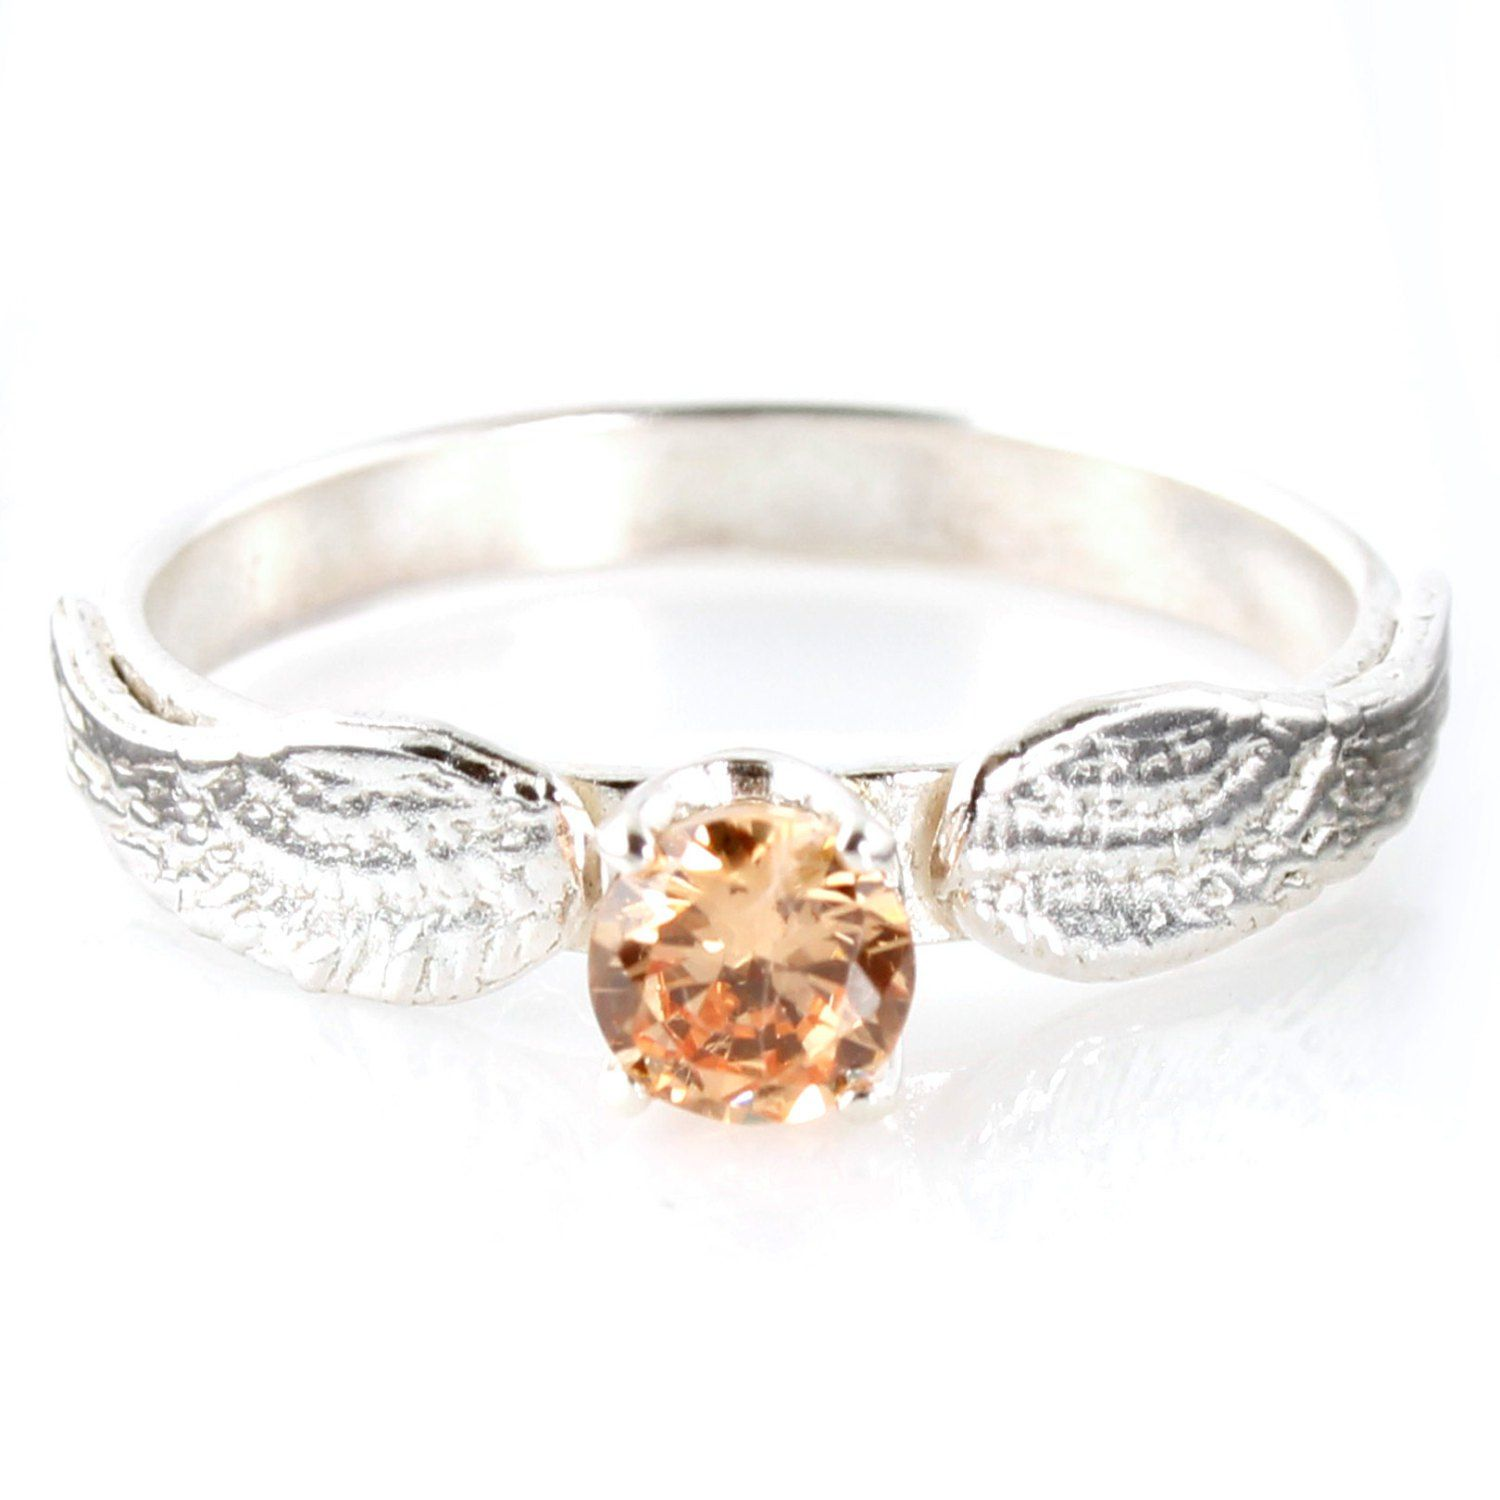 Golden snitch engagement rings as seen on offbeatbride